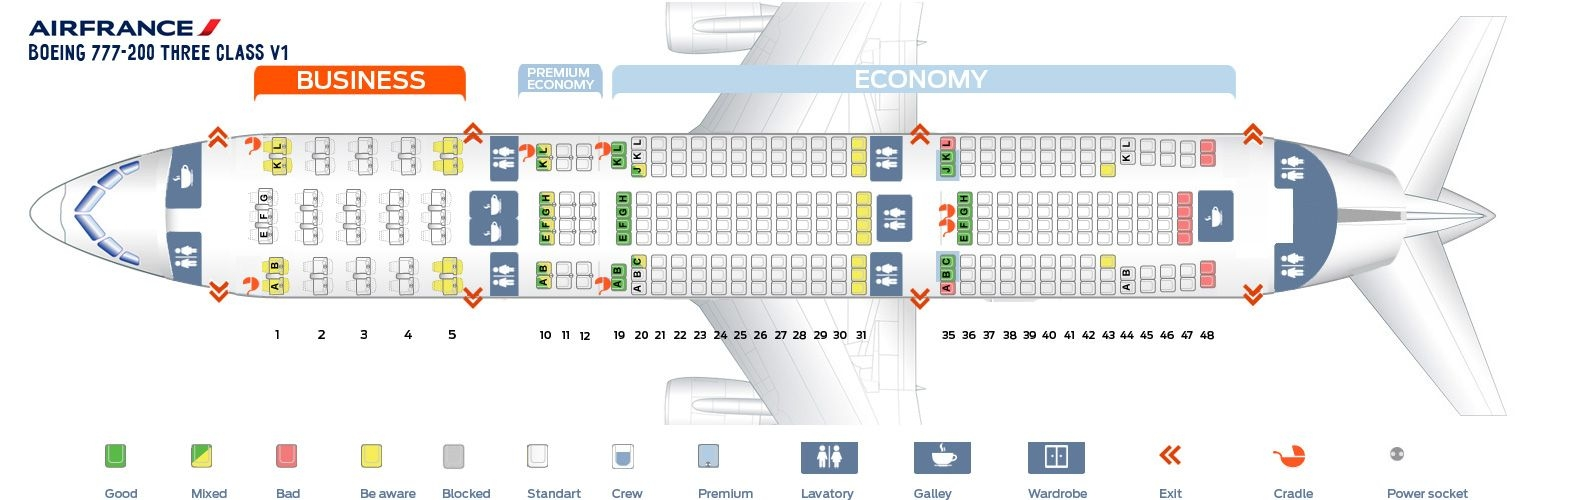 7 Photos Boeing 777 200 Seat Map And View - Alqu Blog